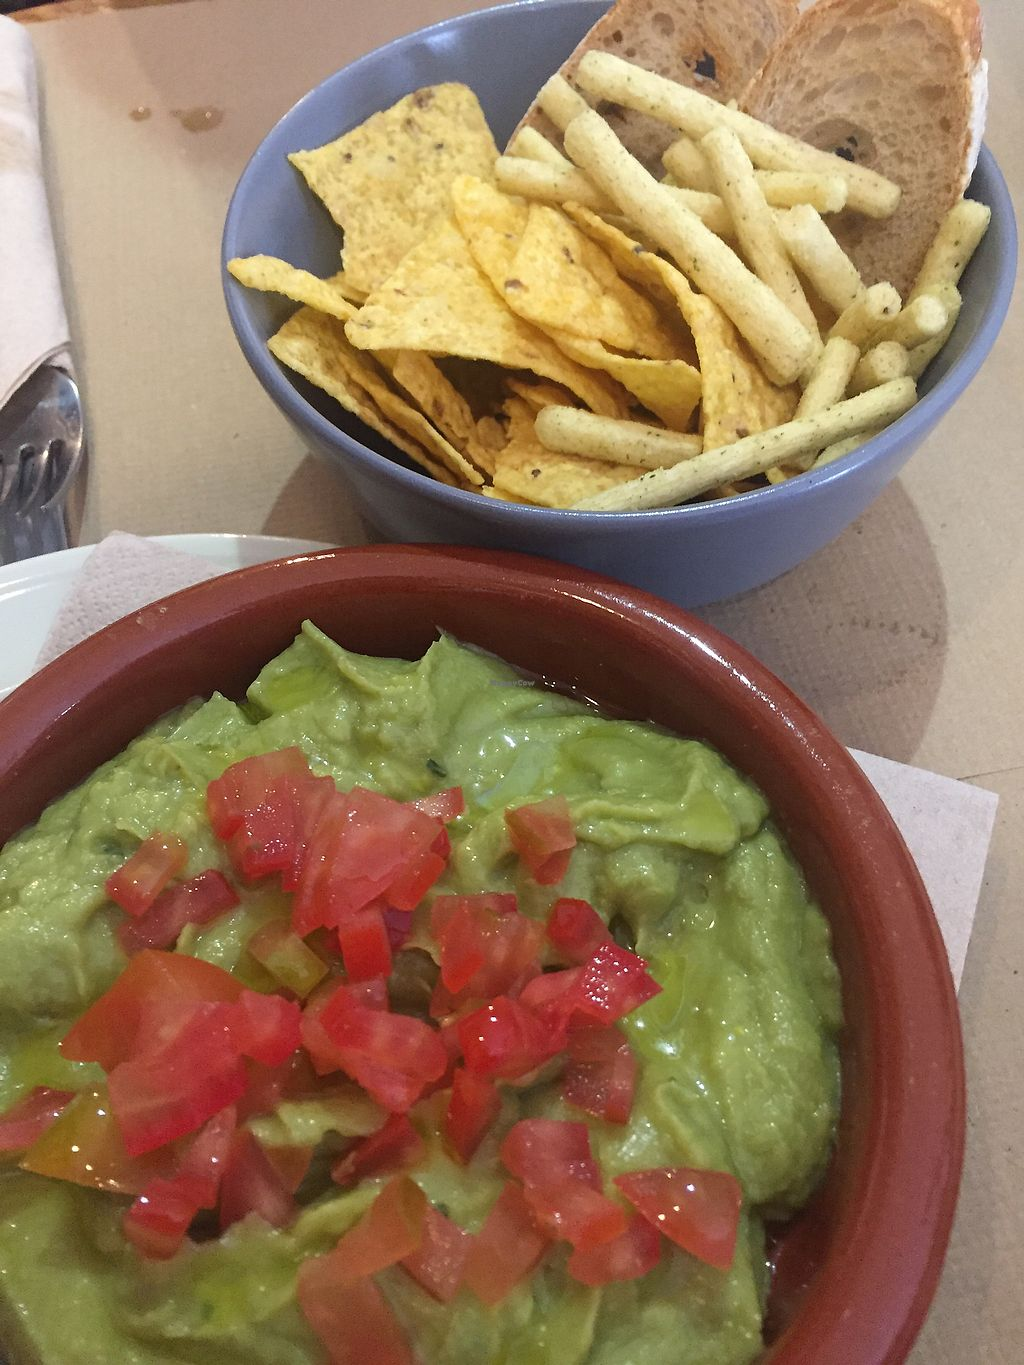 """Photo of Green Zone Bio Bar  by <a href=""""/members/profile/guillehdezp"""">guillehdezp</a> <br/>guacamole & nachos <br/> August 14, 2017  - <a href='/contact/abuse/image/88068/292738'>Report</a>"""